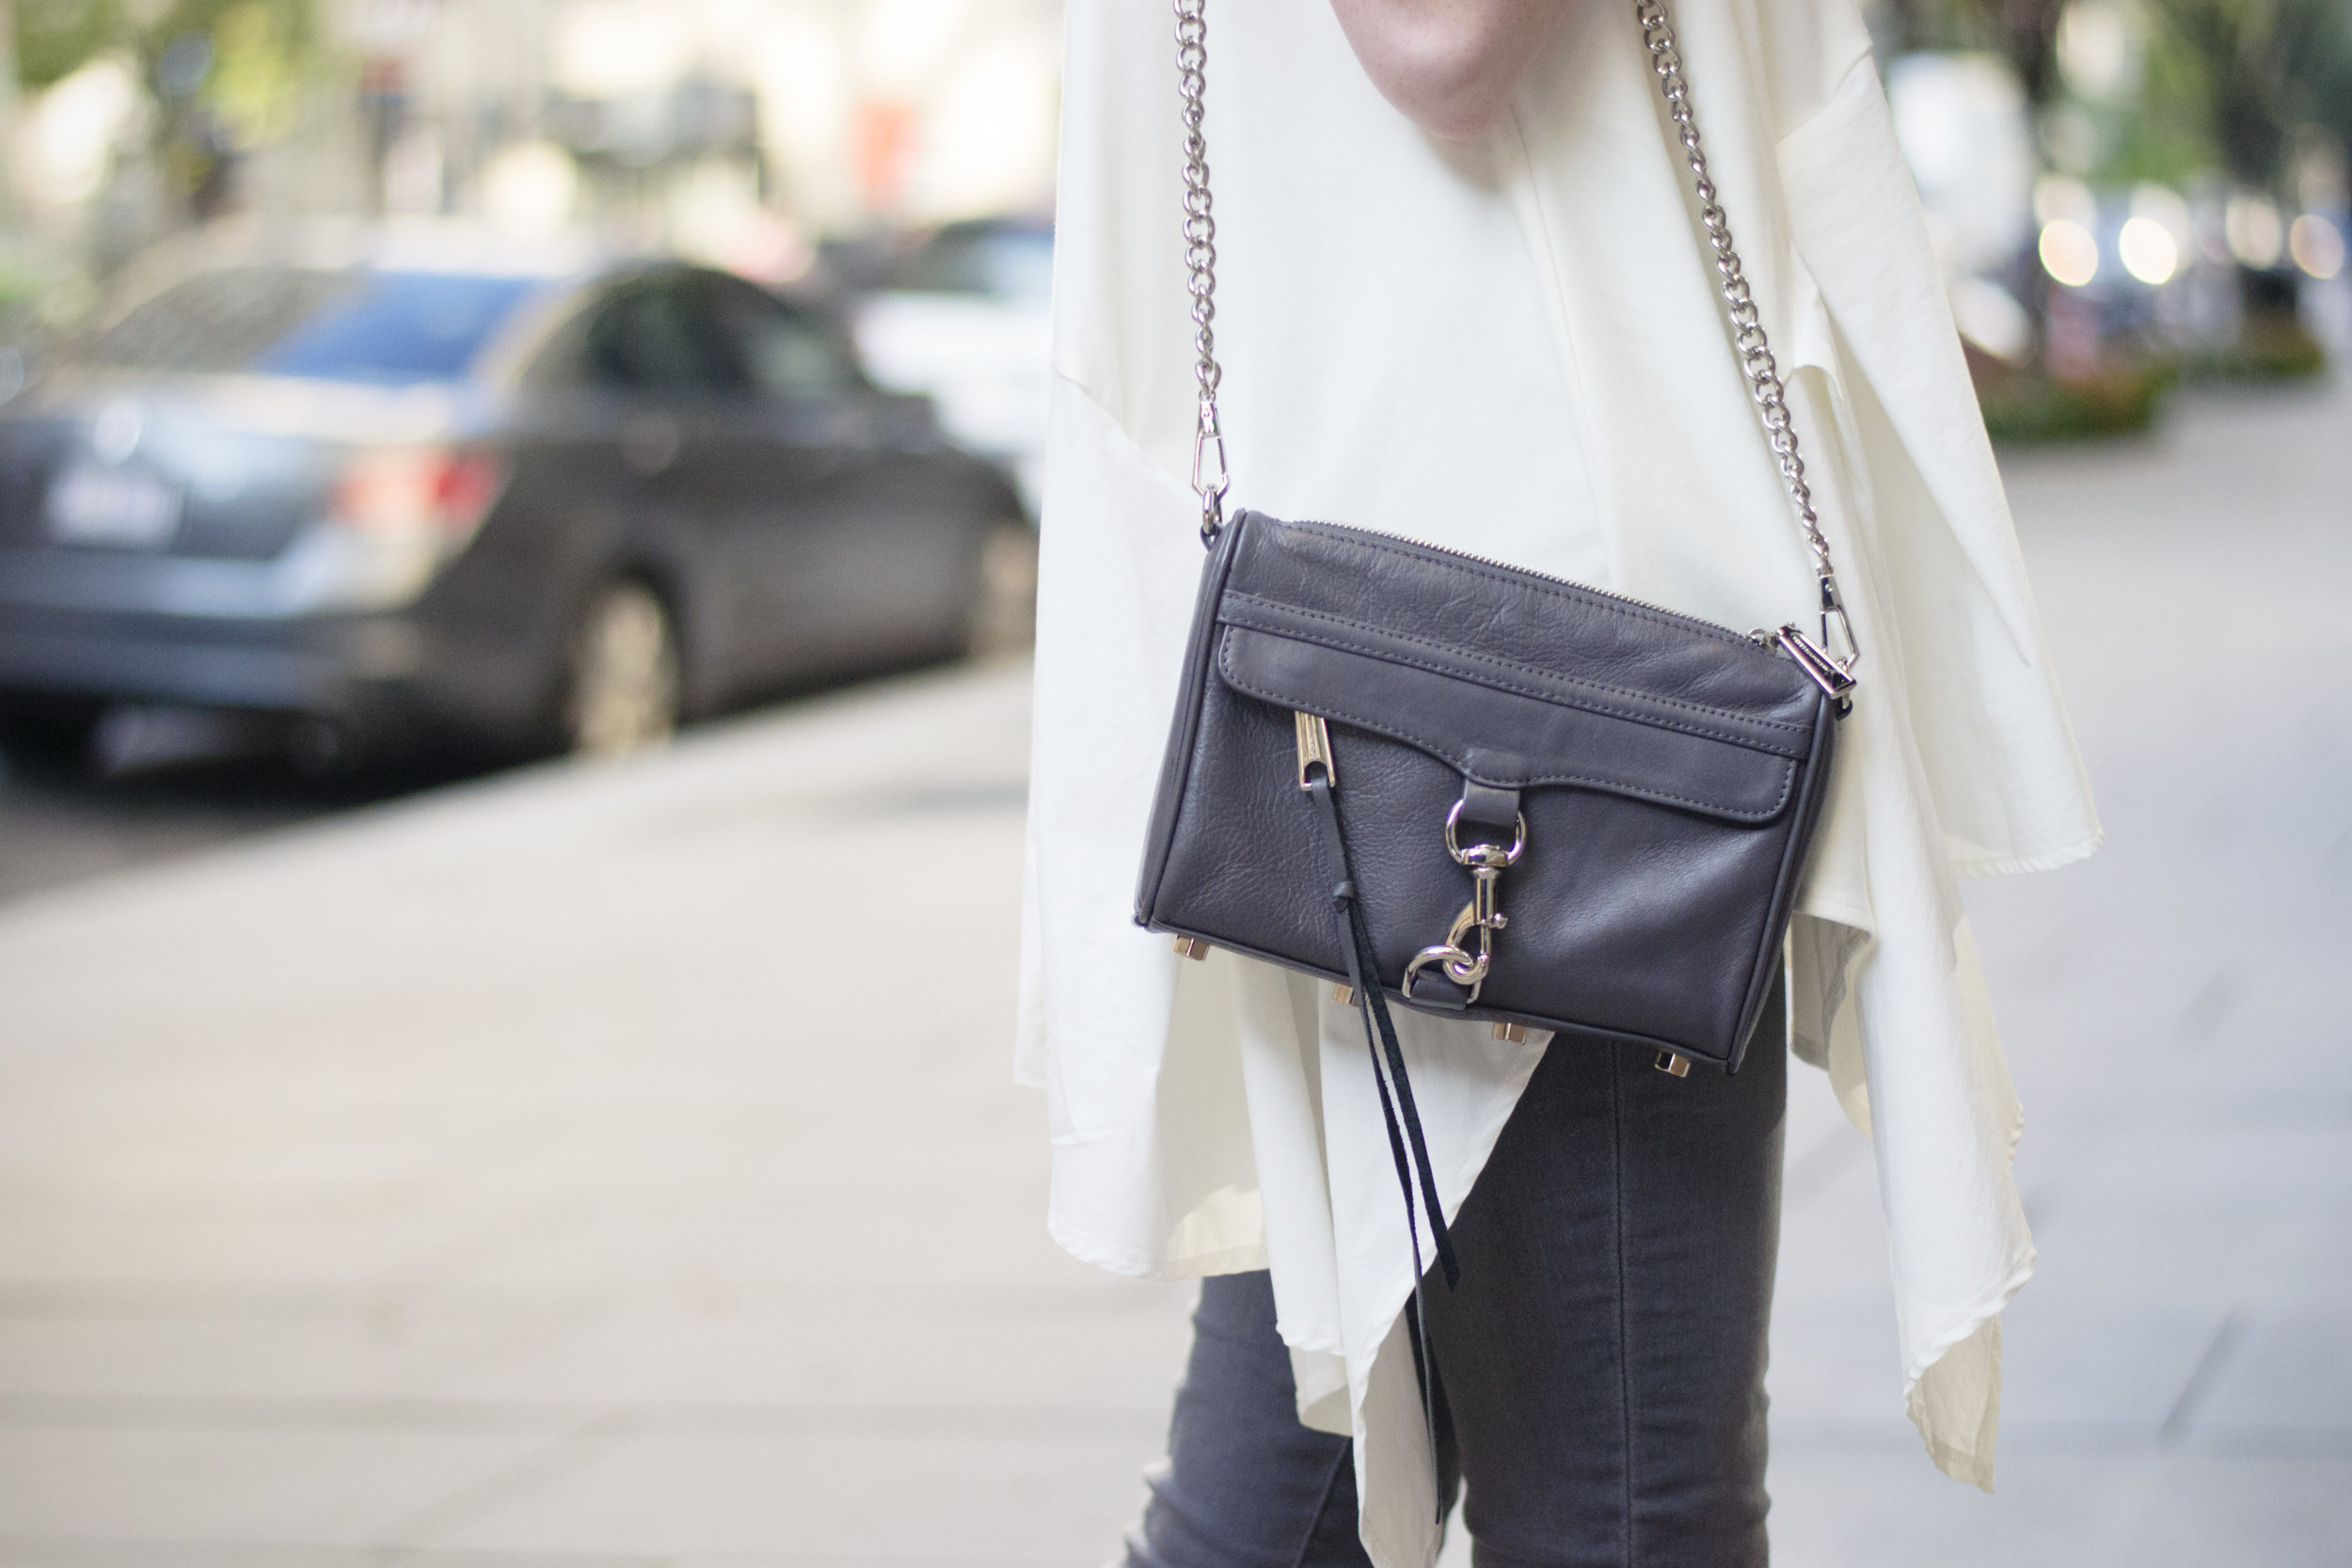 Chic Pairing: Ruffles & Crossbody Bag (via Chic Now)